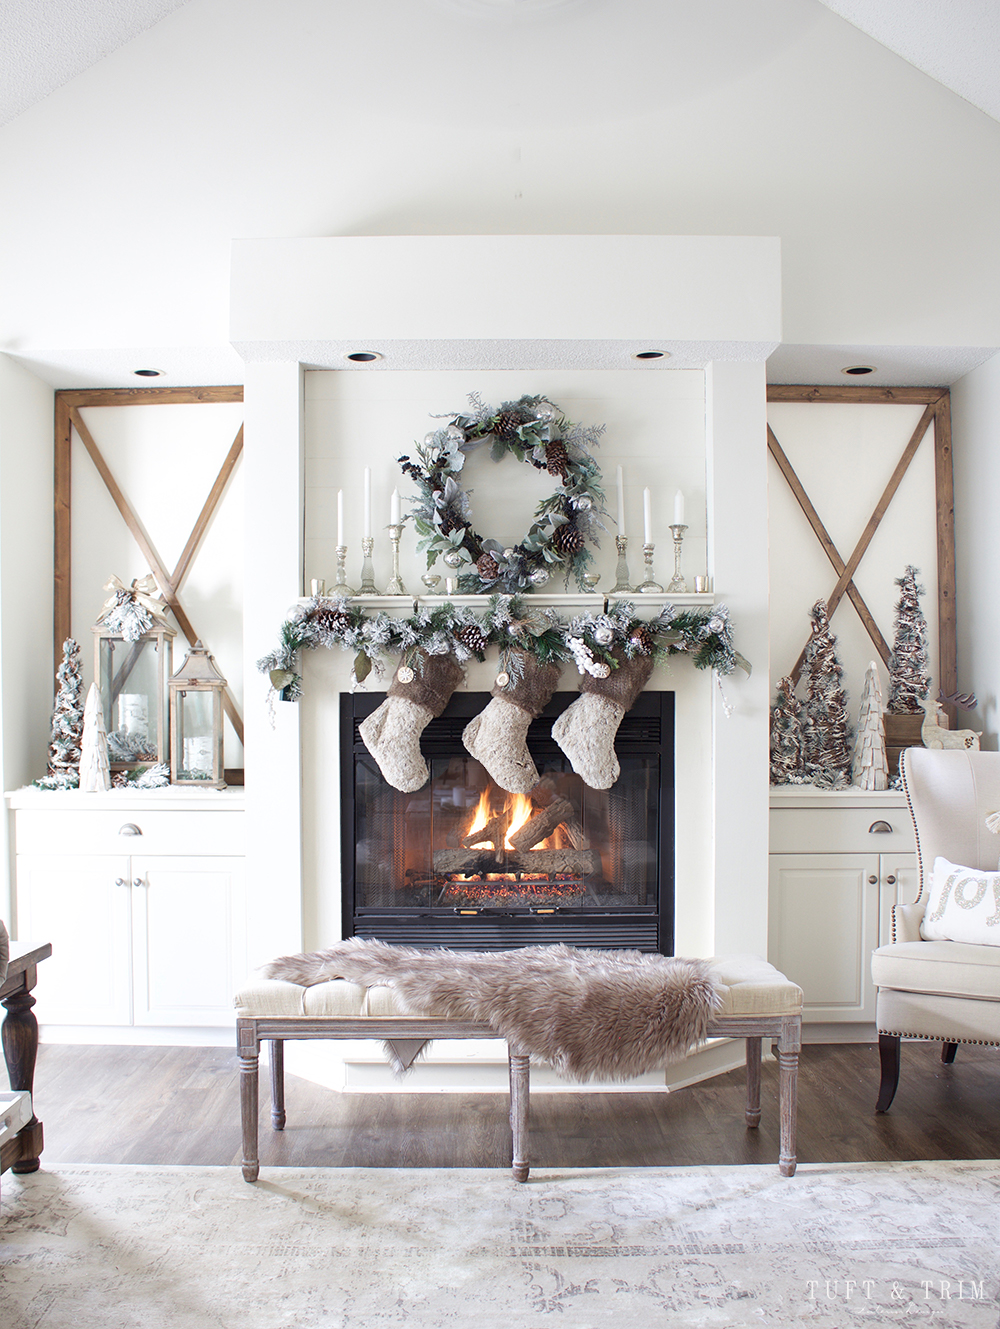 7 Chic Christmas Decorations for The Most Memorable Holiday 07 chic christmas decorations 7 Chic Christmas Decorations for The Most Memorable Holiday 7 Chic Christmas Decorations for The Most Unforgettable Holiday 07